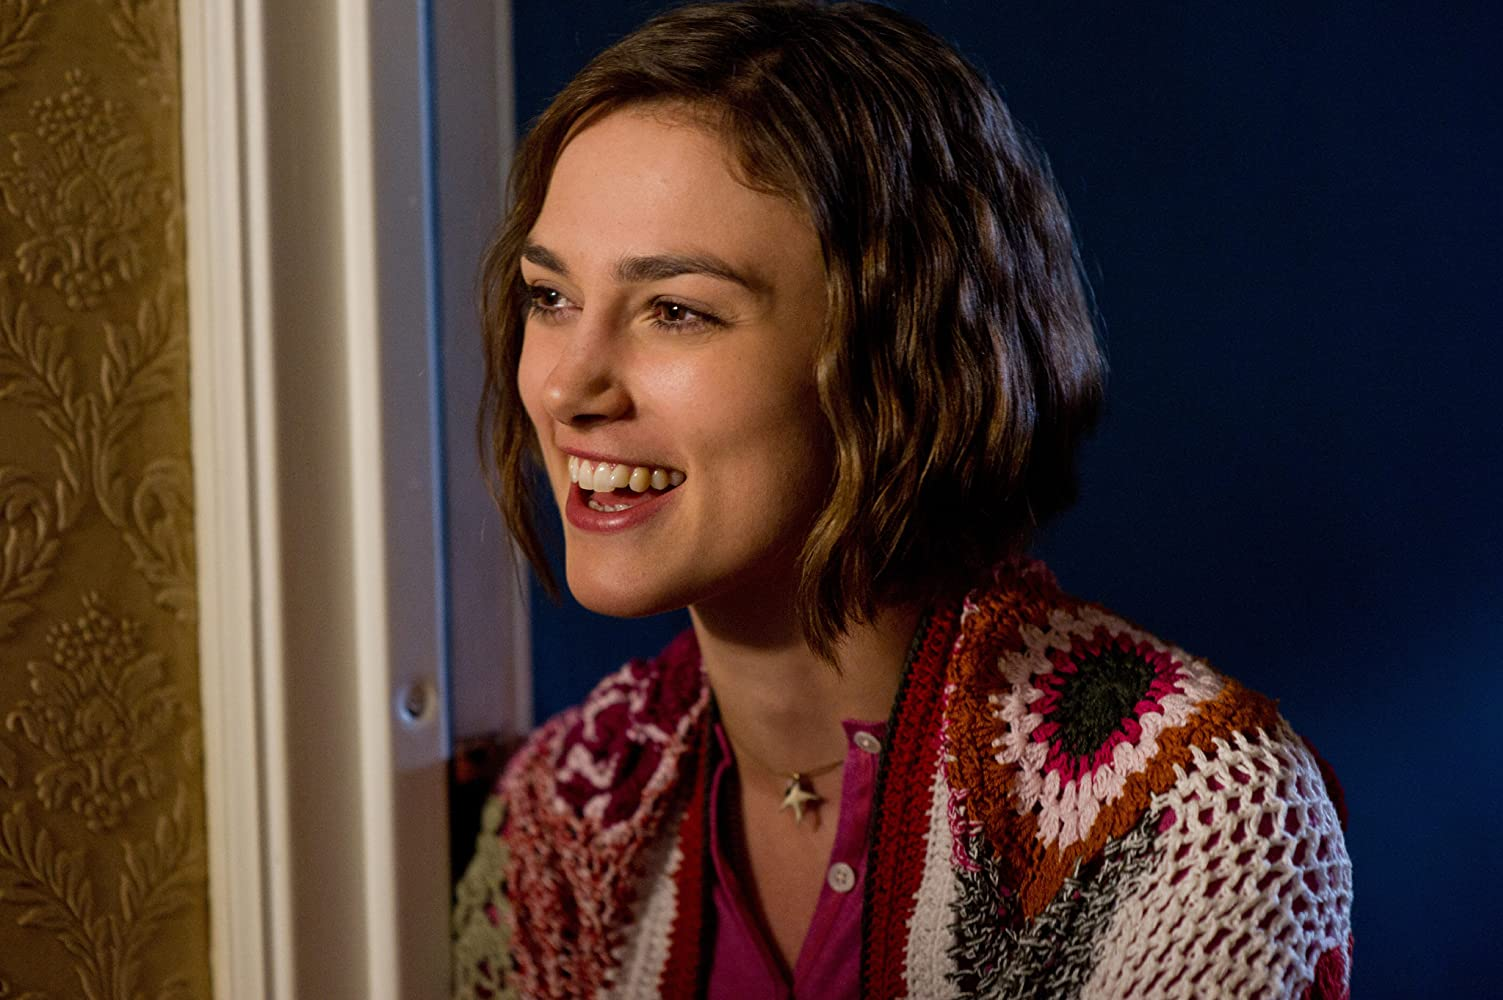 Keira Knightley in Seeking a Friend for the End of the World (2012)